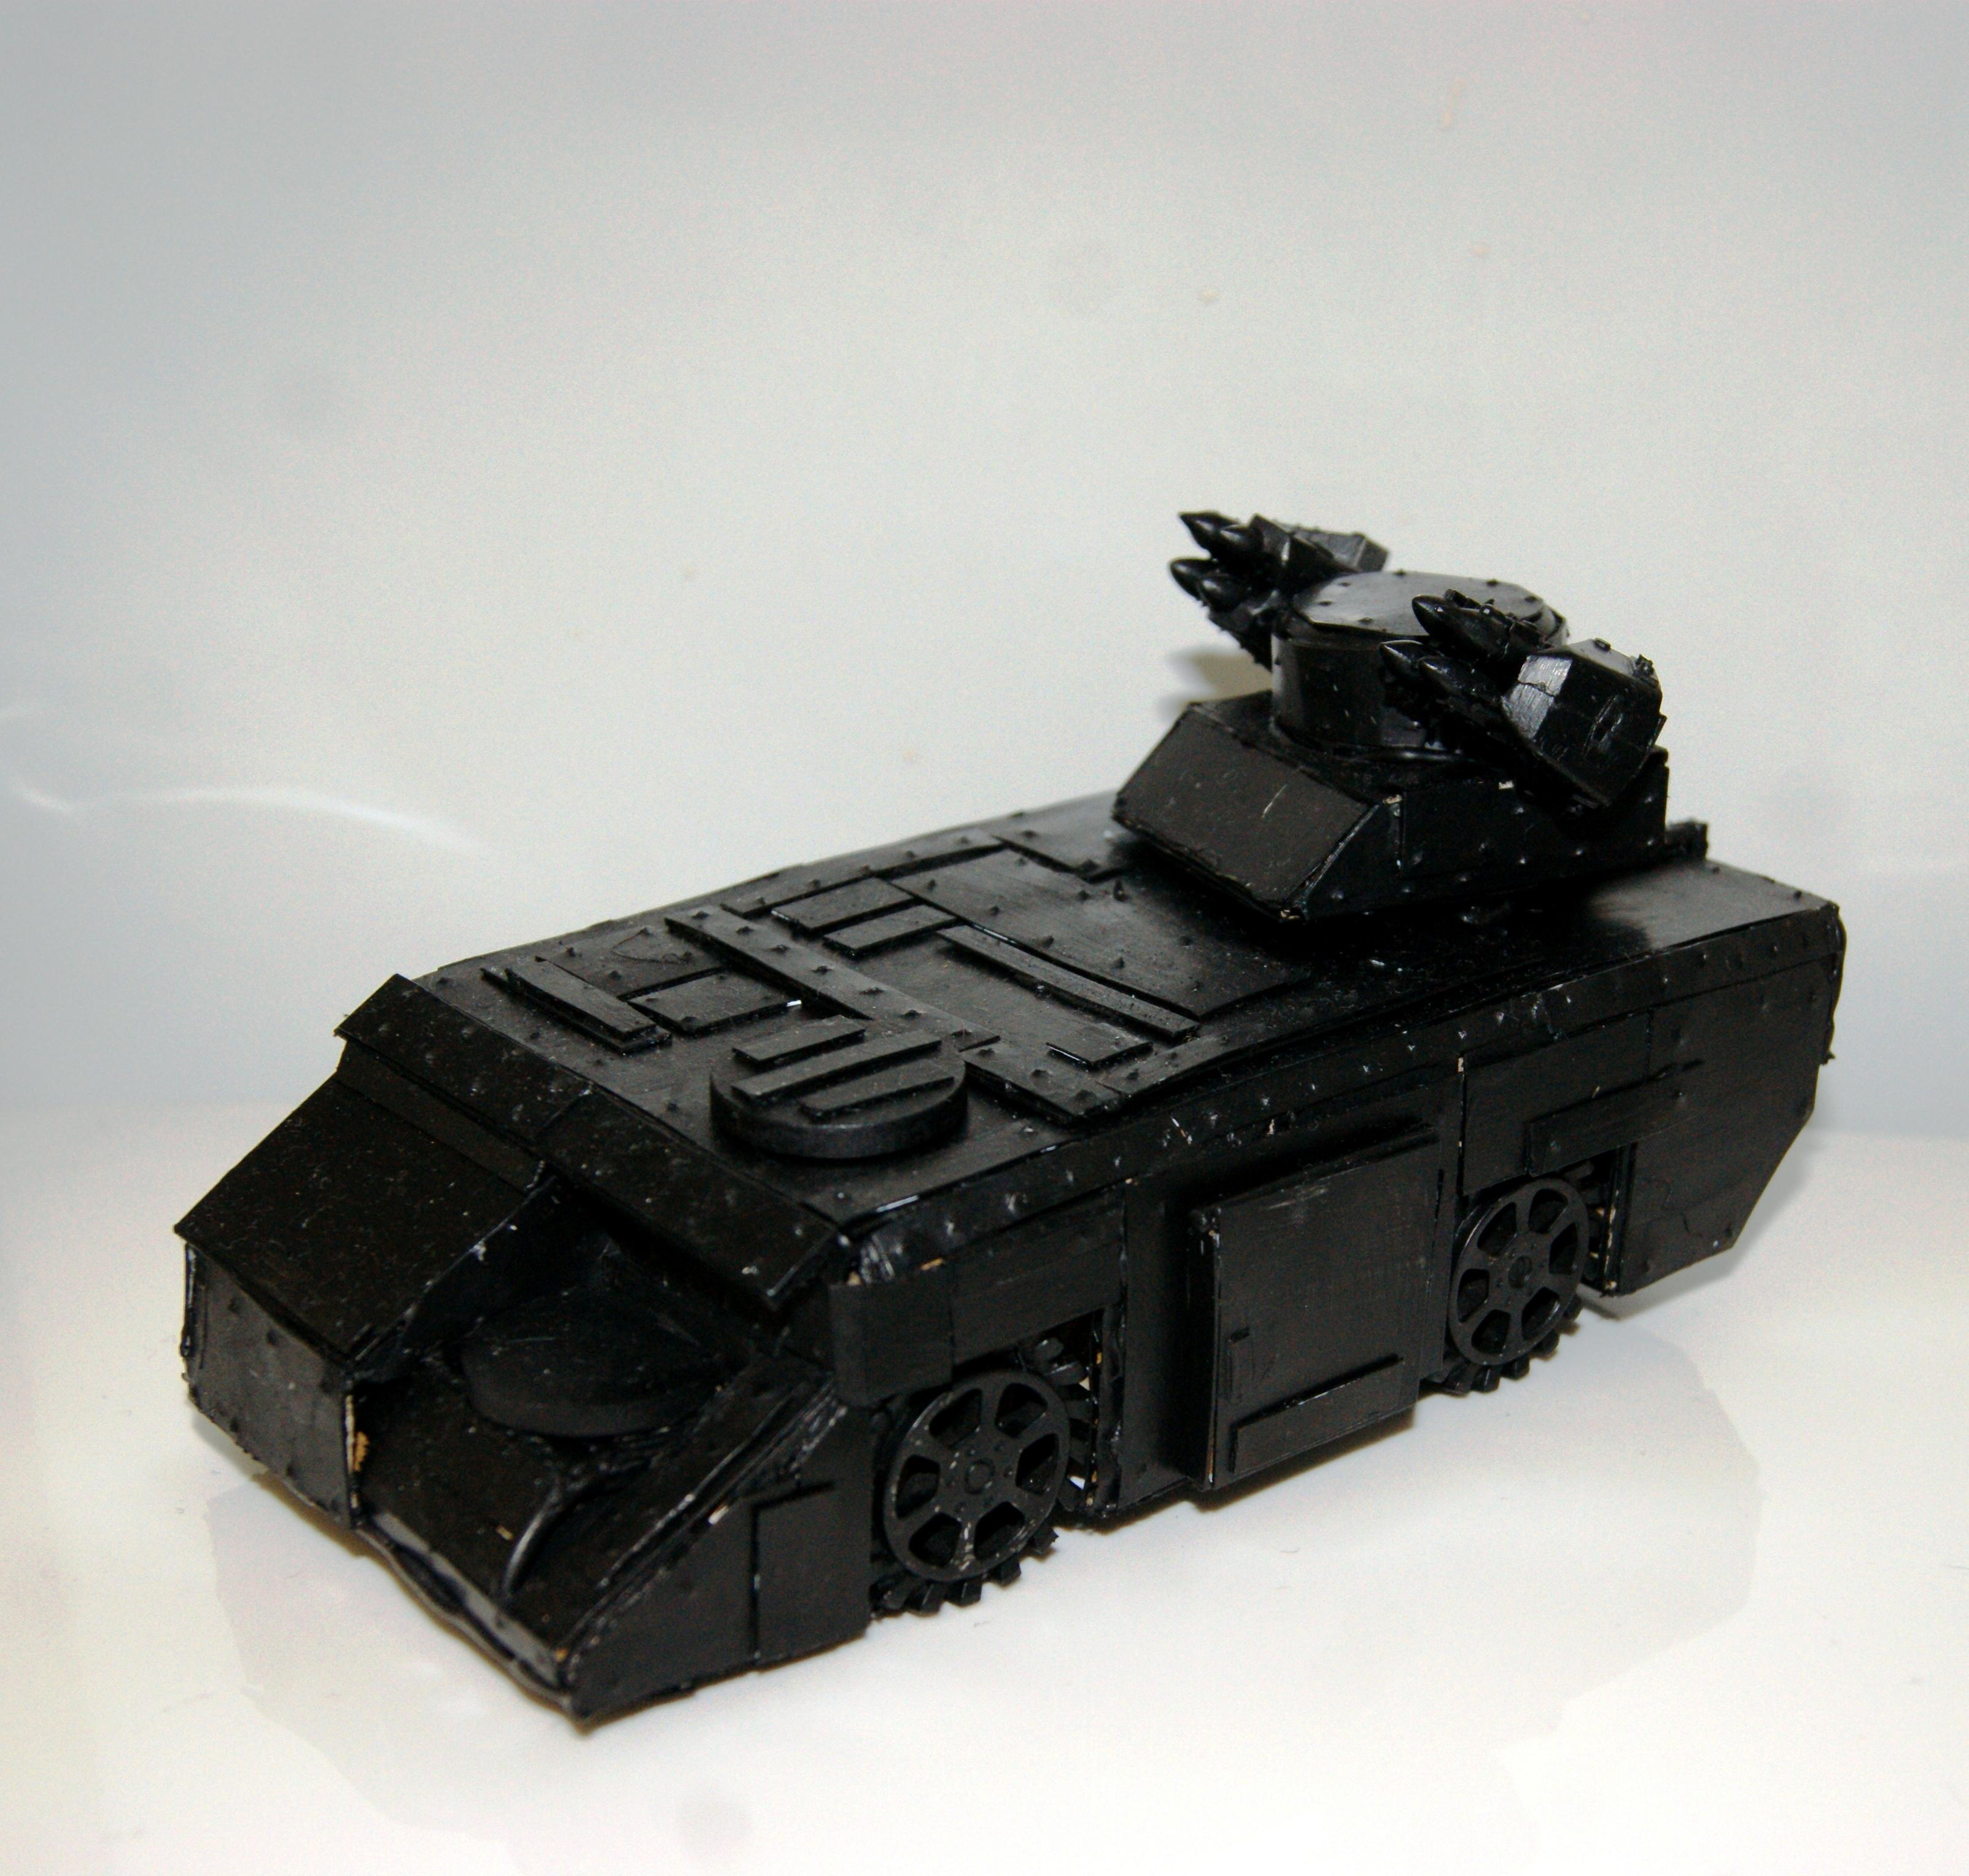 Aliens, Apc, Commission, Conversion, Imperial Guard, Scions, Scratch Build, Warhammer 40,000, Warhammer Fantasy